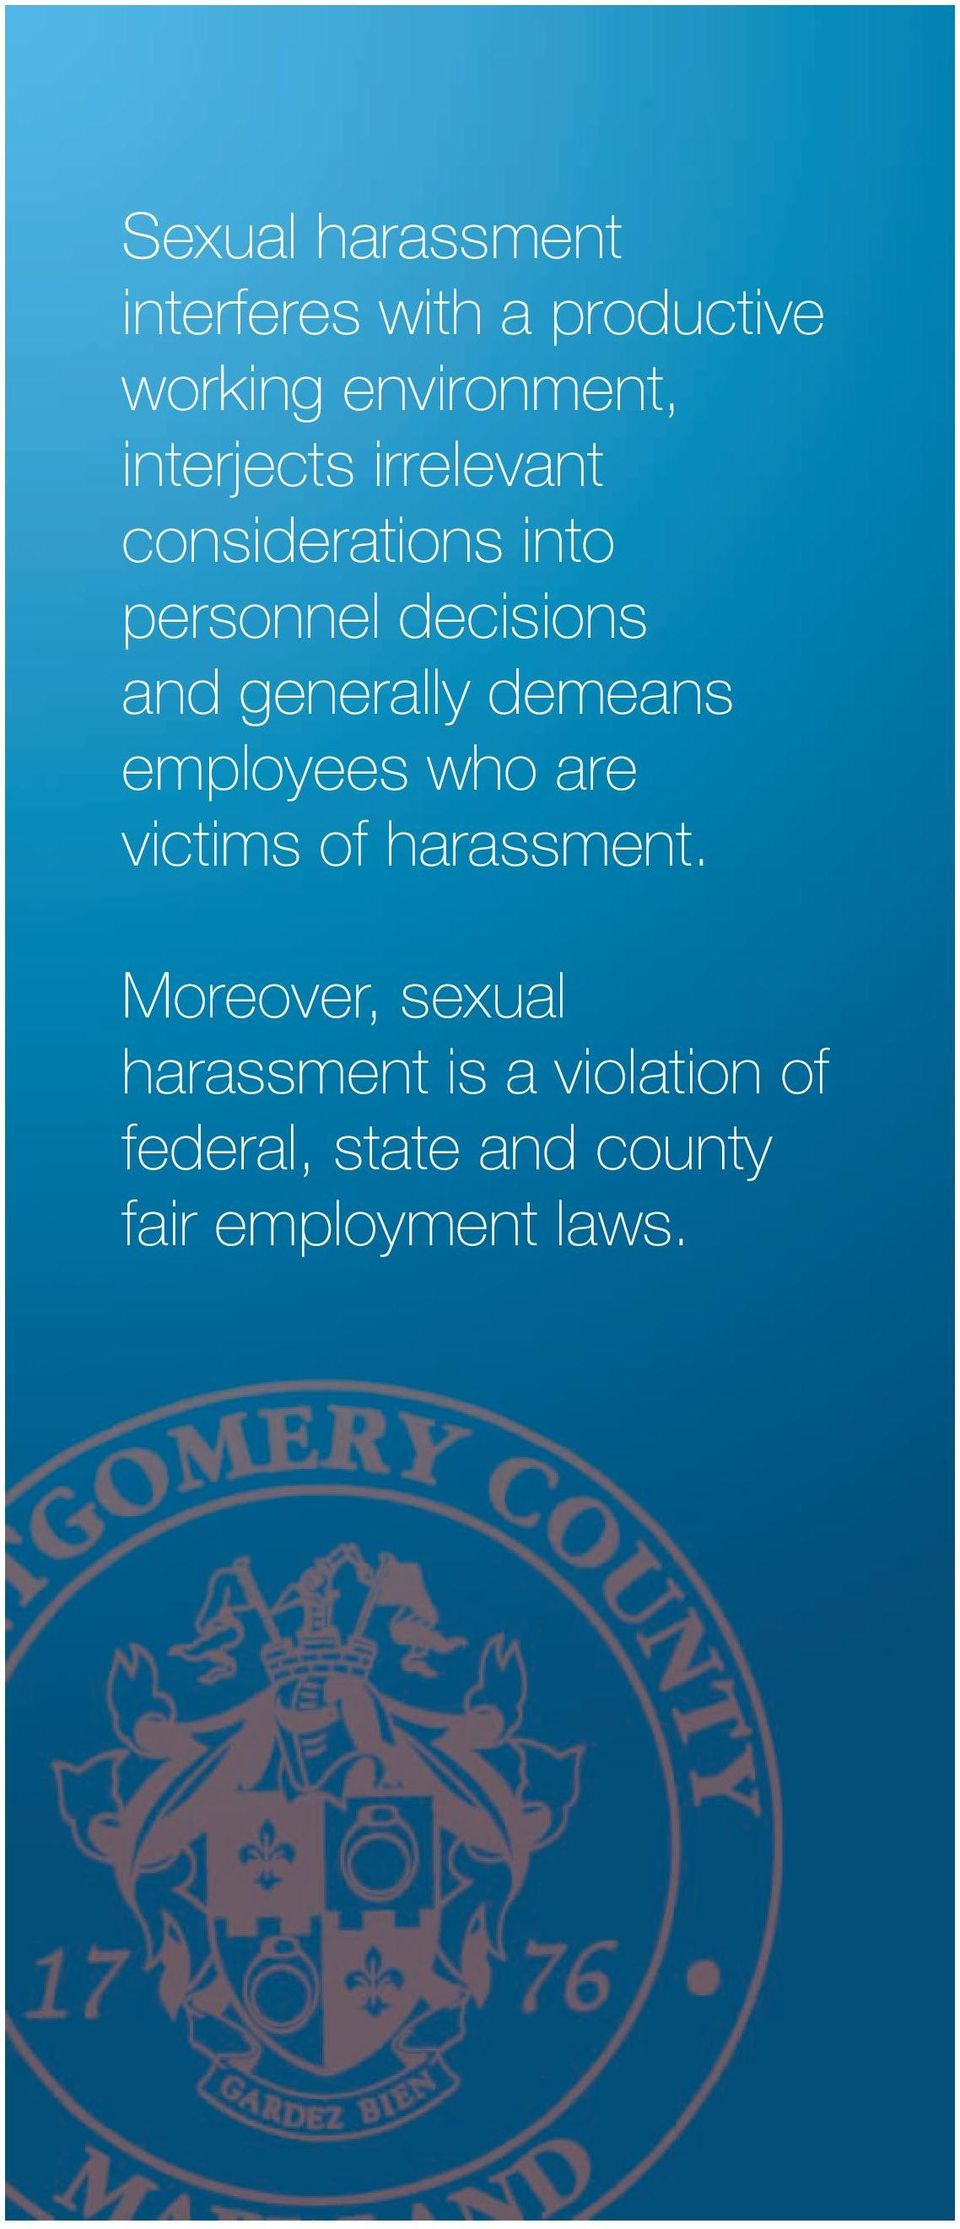 generally demeans employees who are victims of harassment.